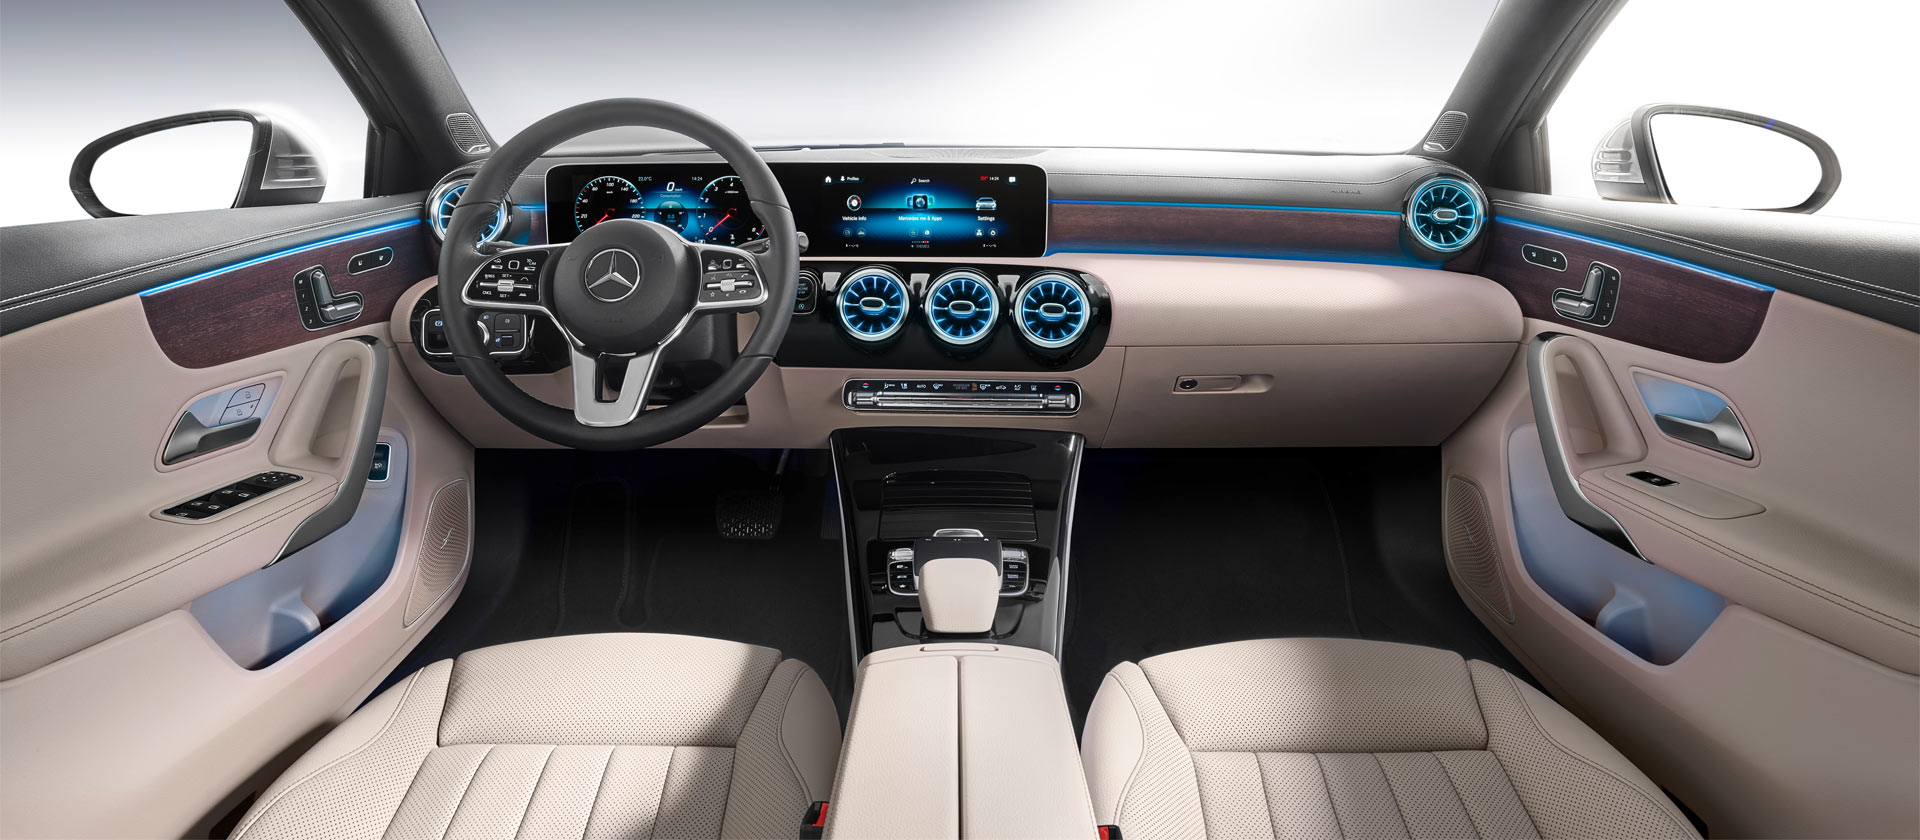 2019-Mercedes-Benz-A-Class-Sedan-interior_2